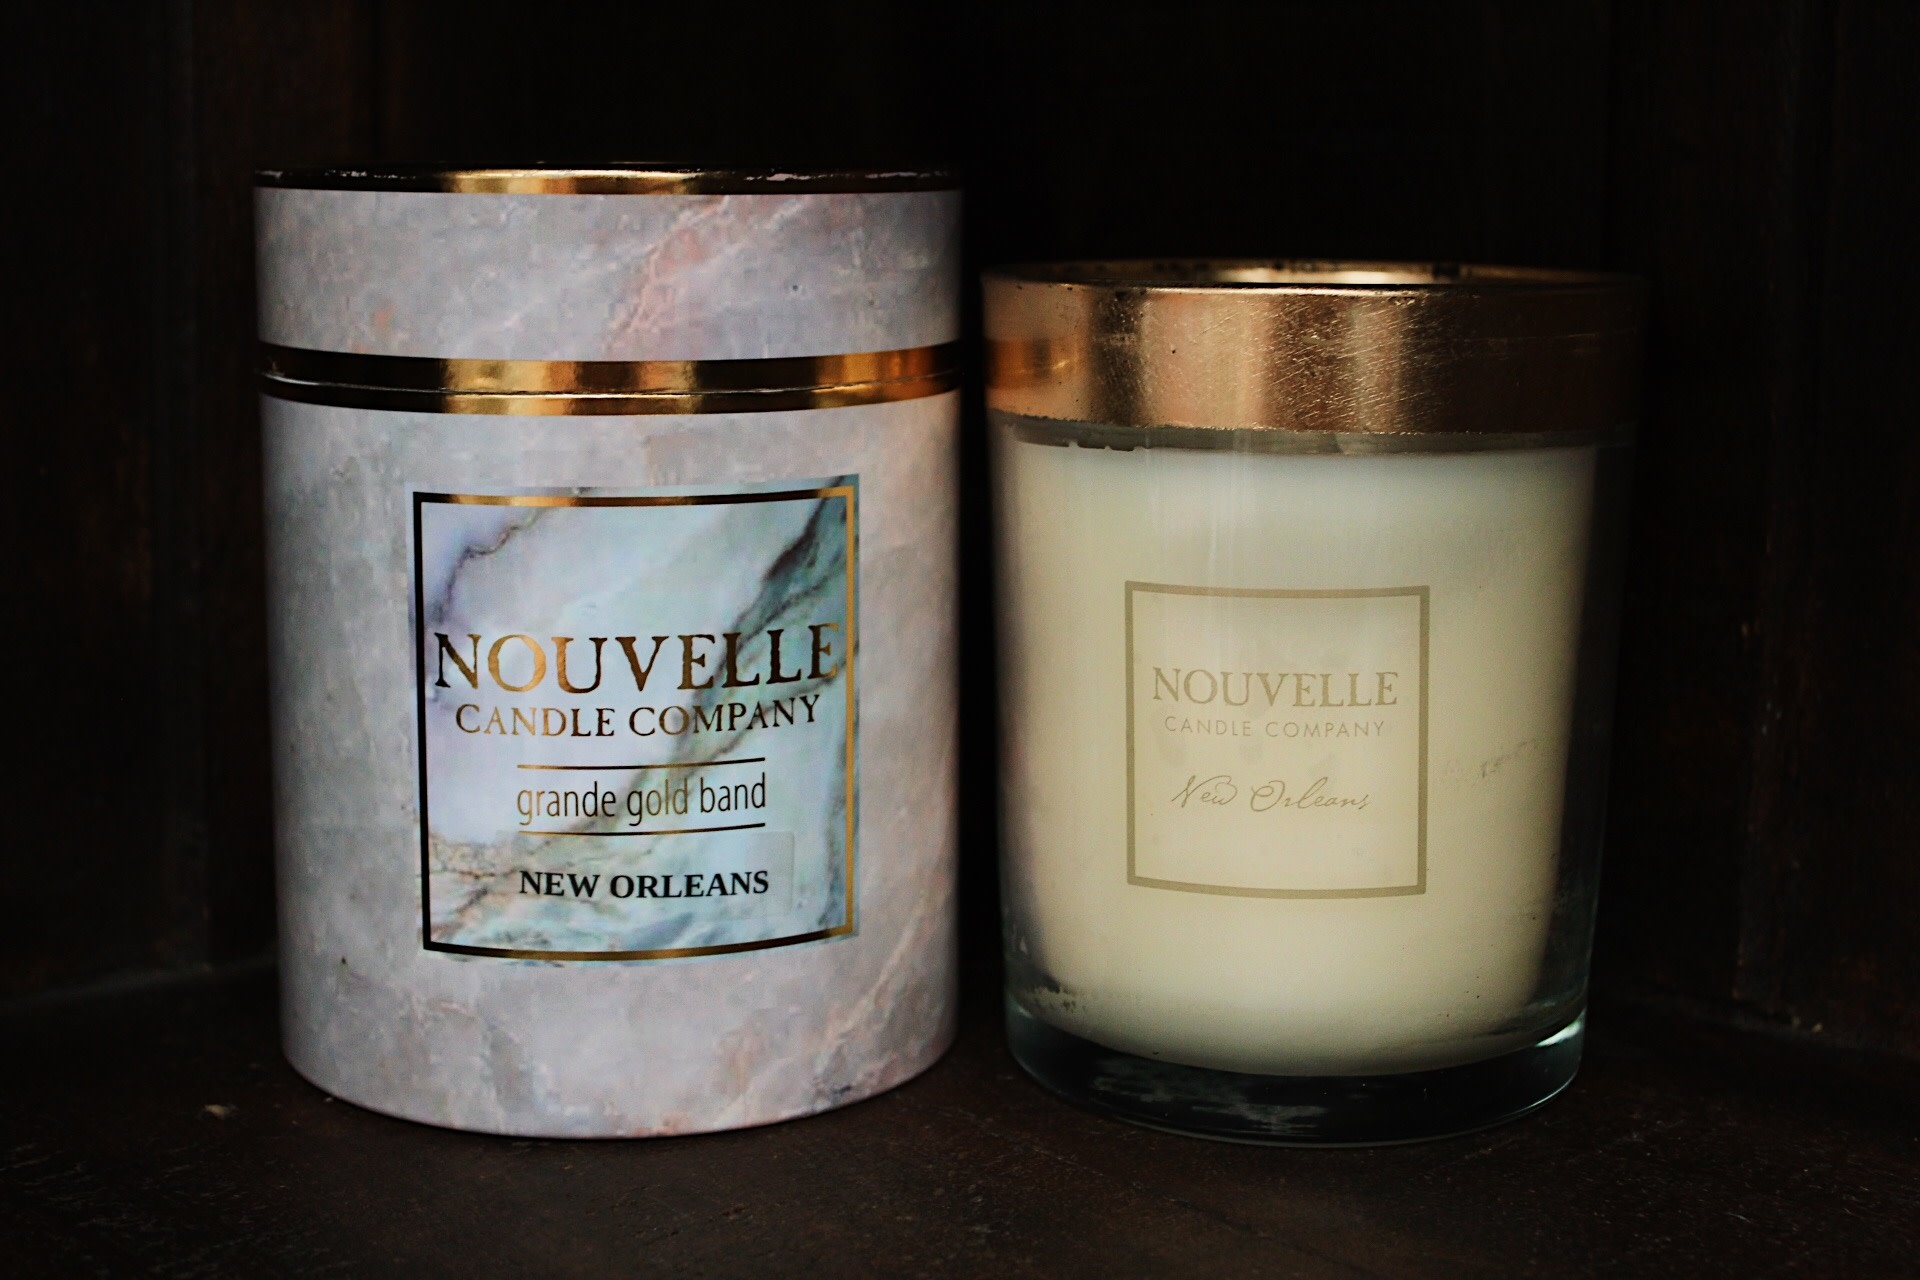 Nouvelle Candle Company New Orleans Boxed Gold Band Grande